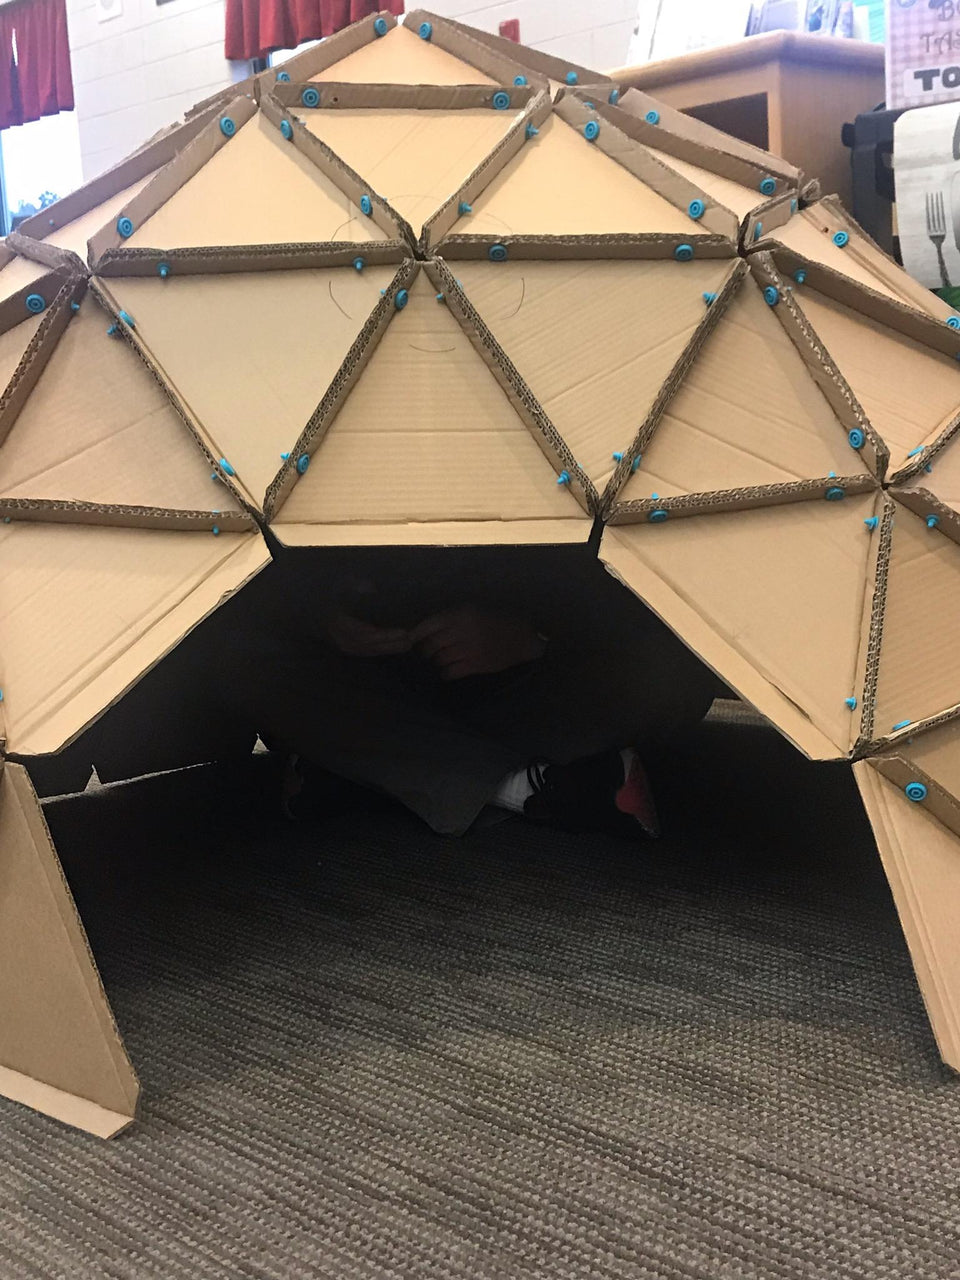 Library Geo Dome